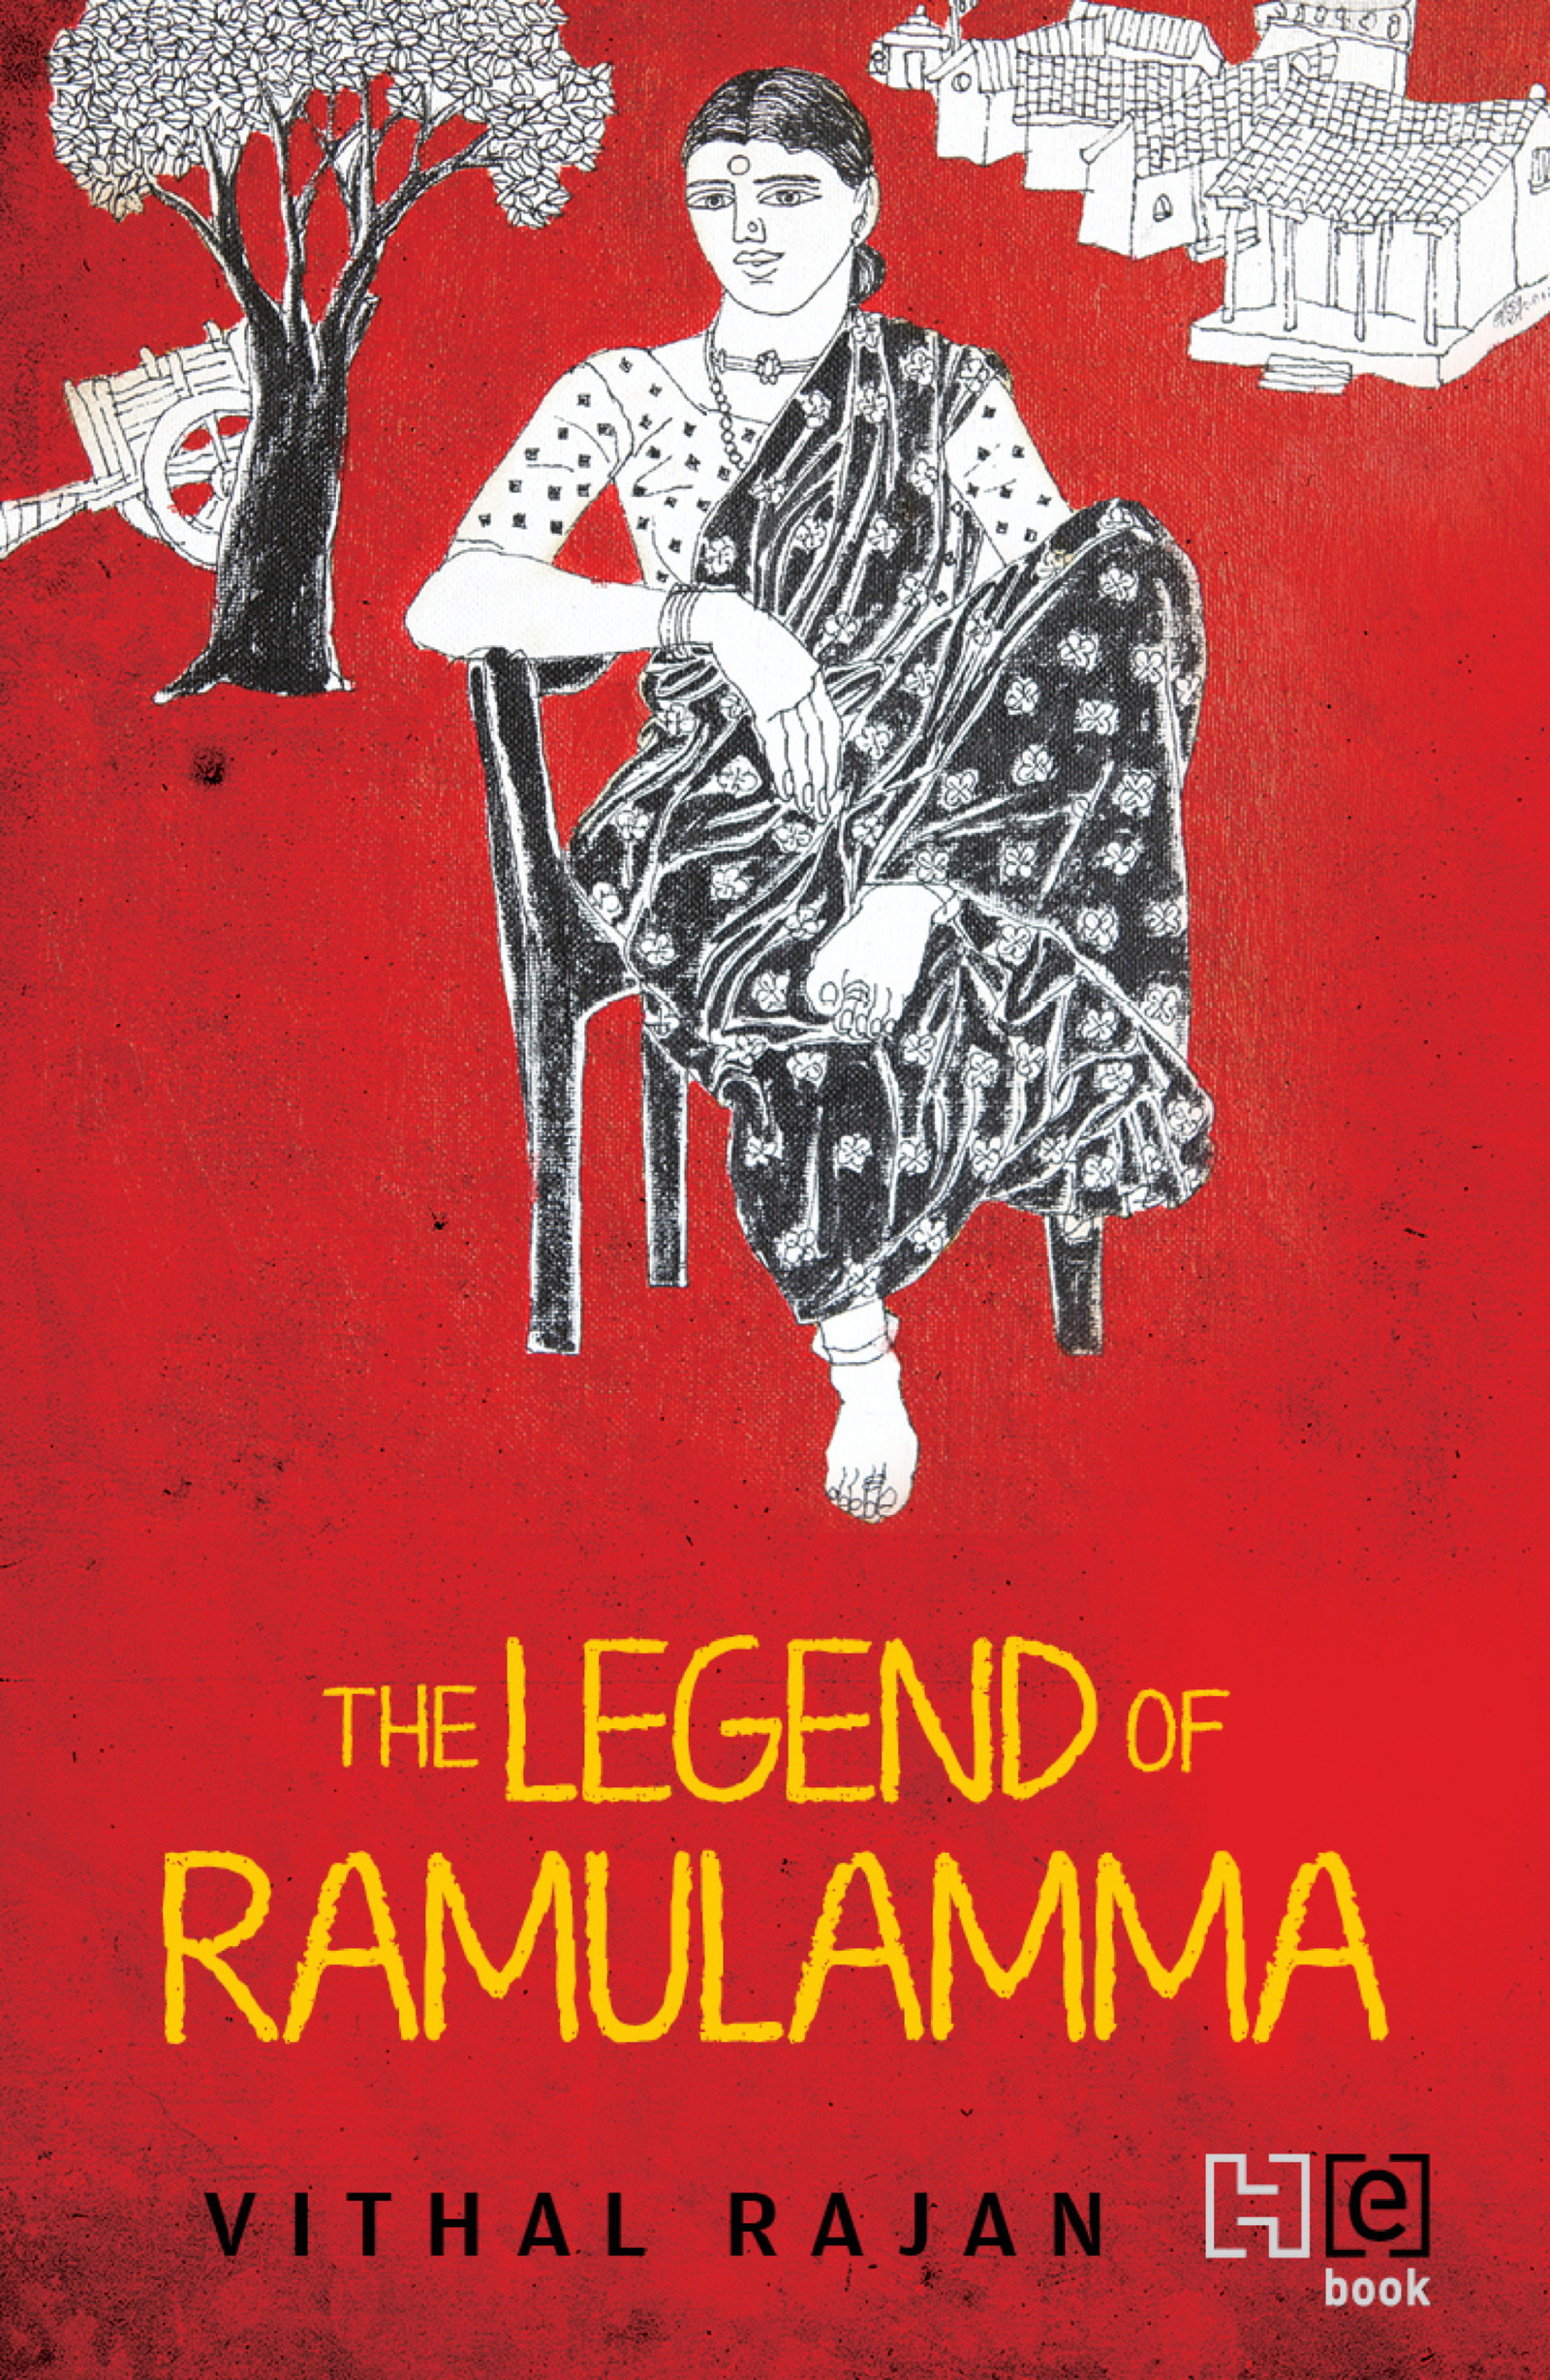 The Legend of Ramulamma